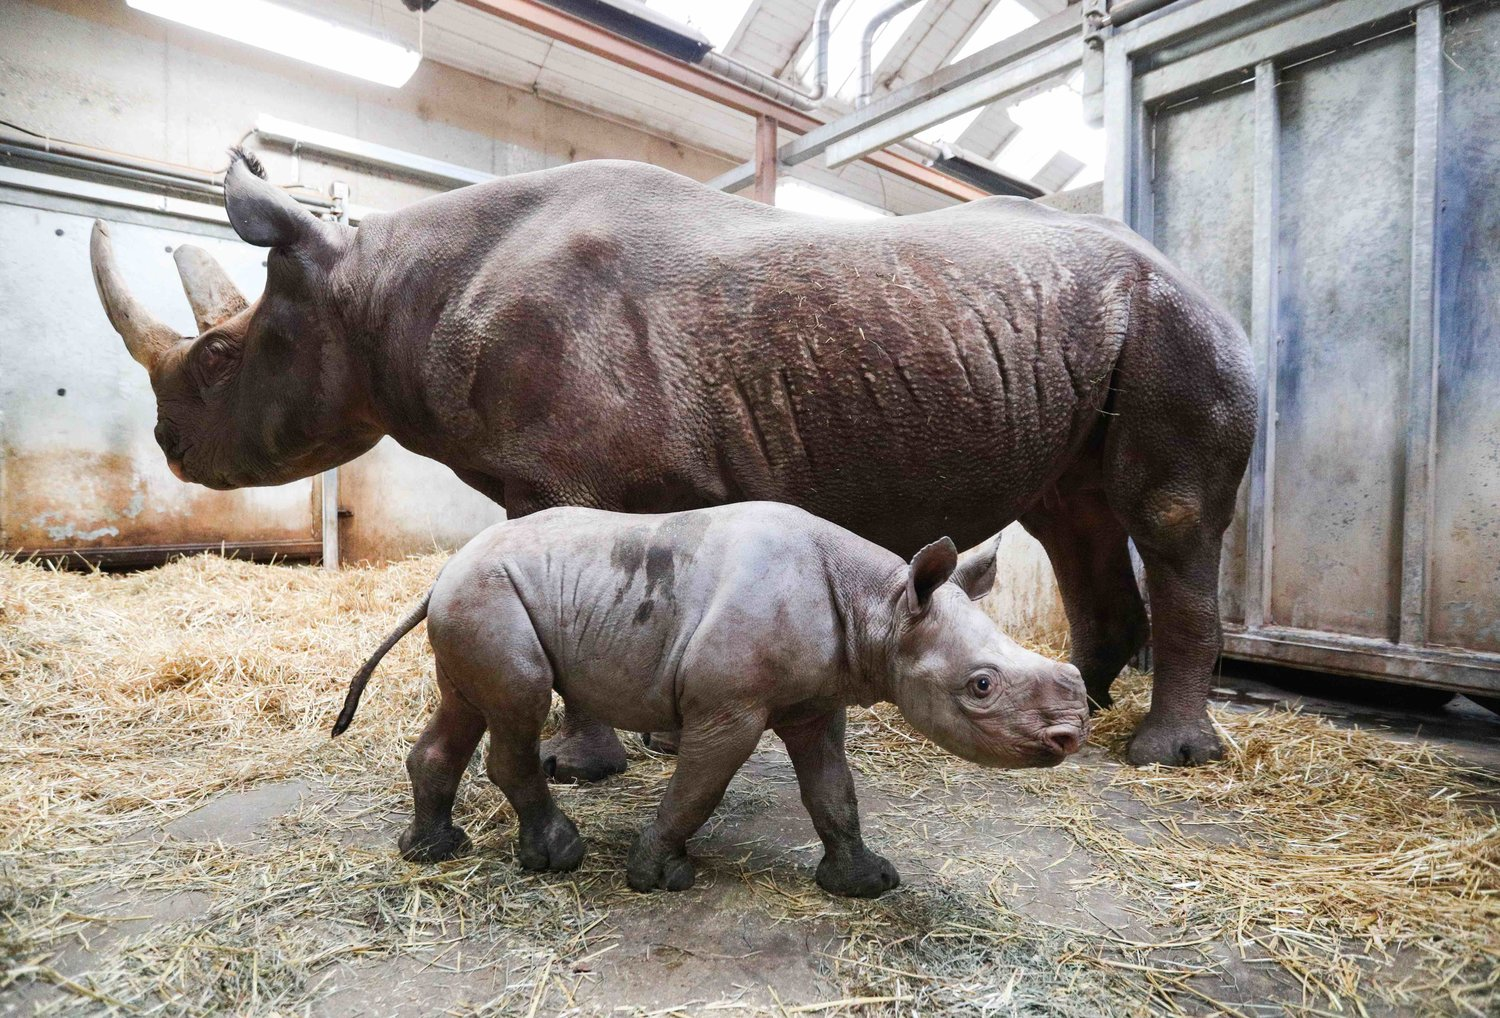 Jaali the baby rhino with his mother Doppsee